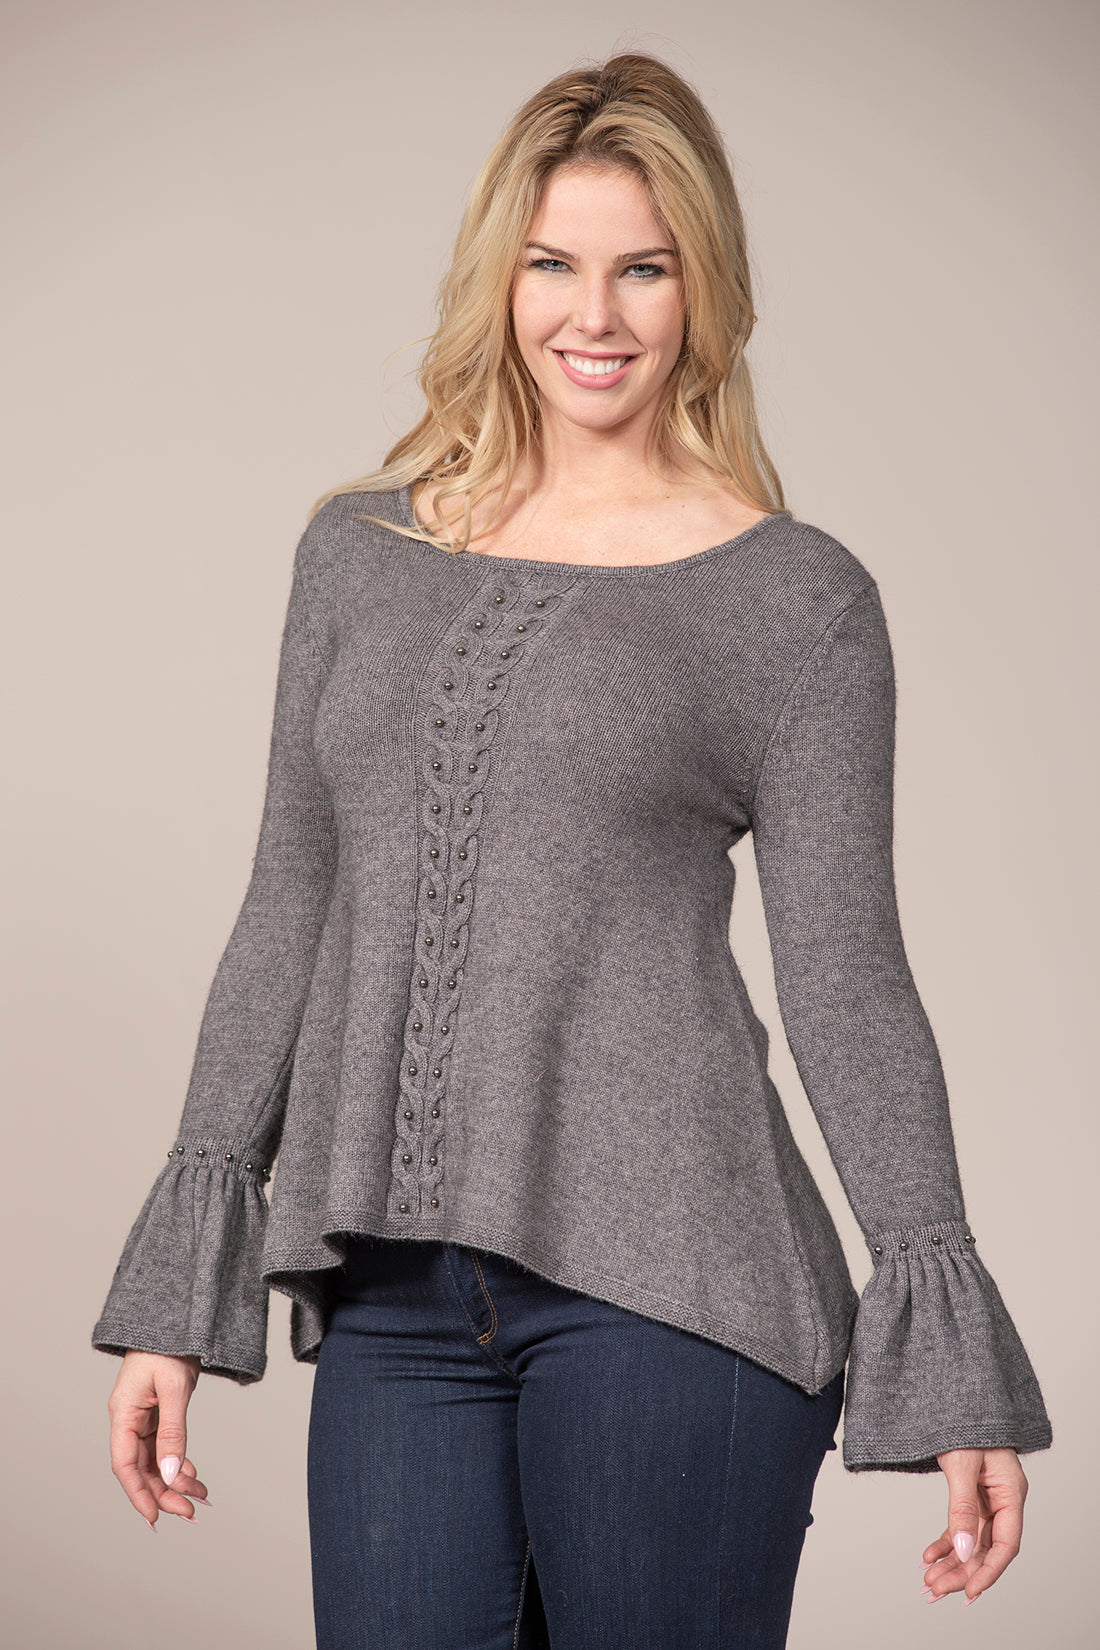 Sweater with Pearl Detail